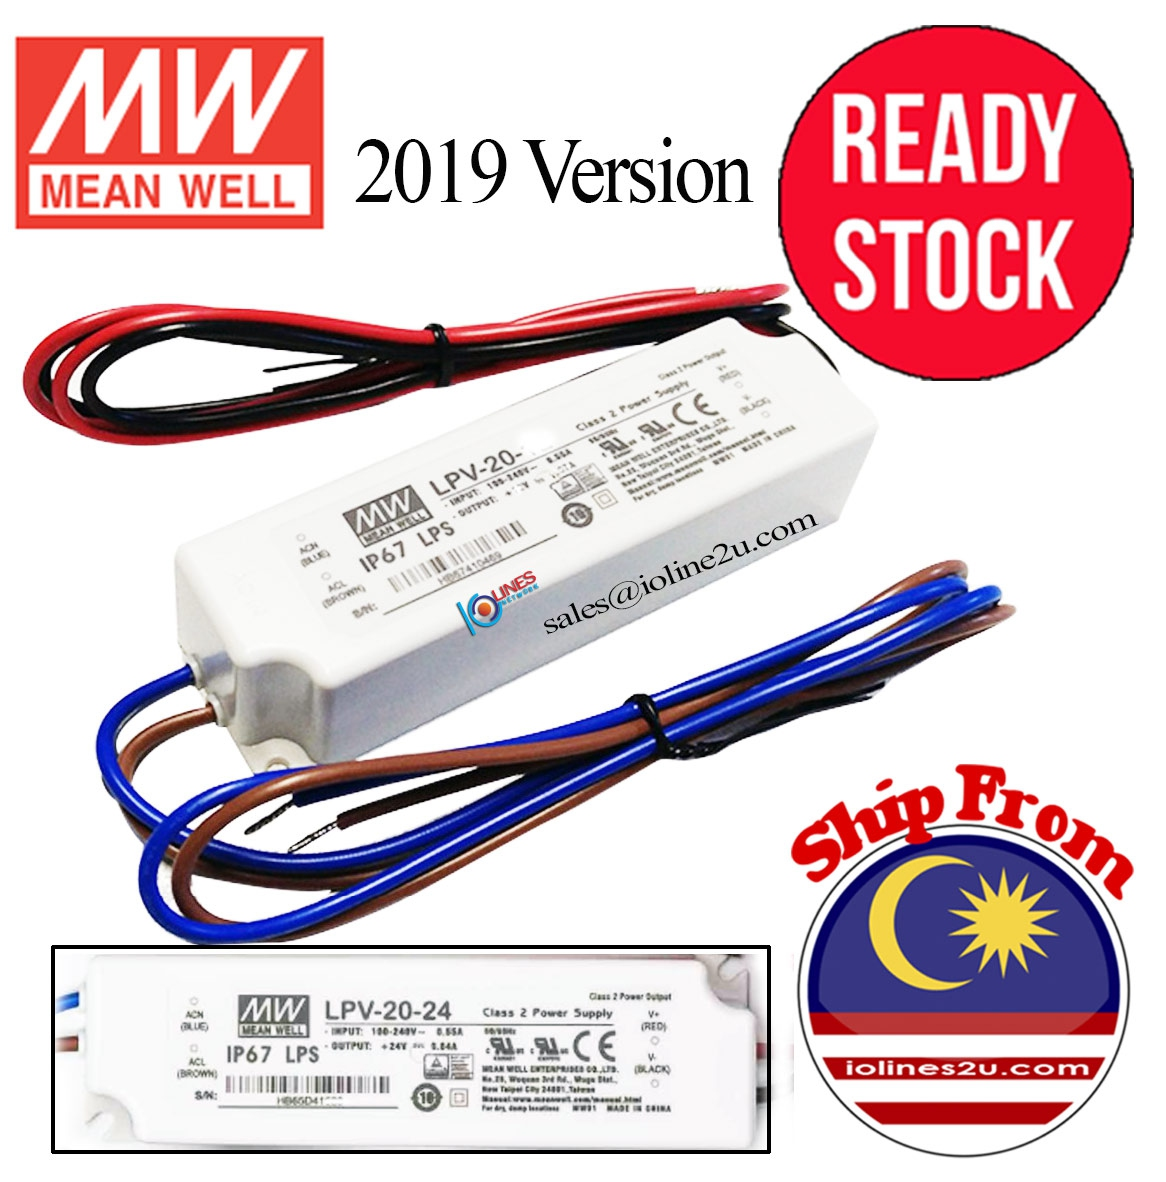 Meanwell Mean well LPV-20-24 24V 0.8A PSU Power Supply Water proof Fully Seale